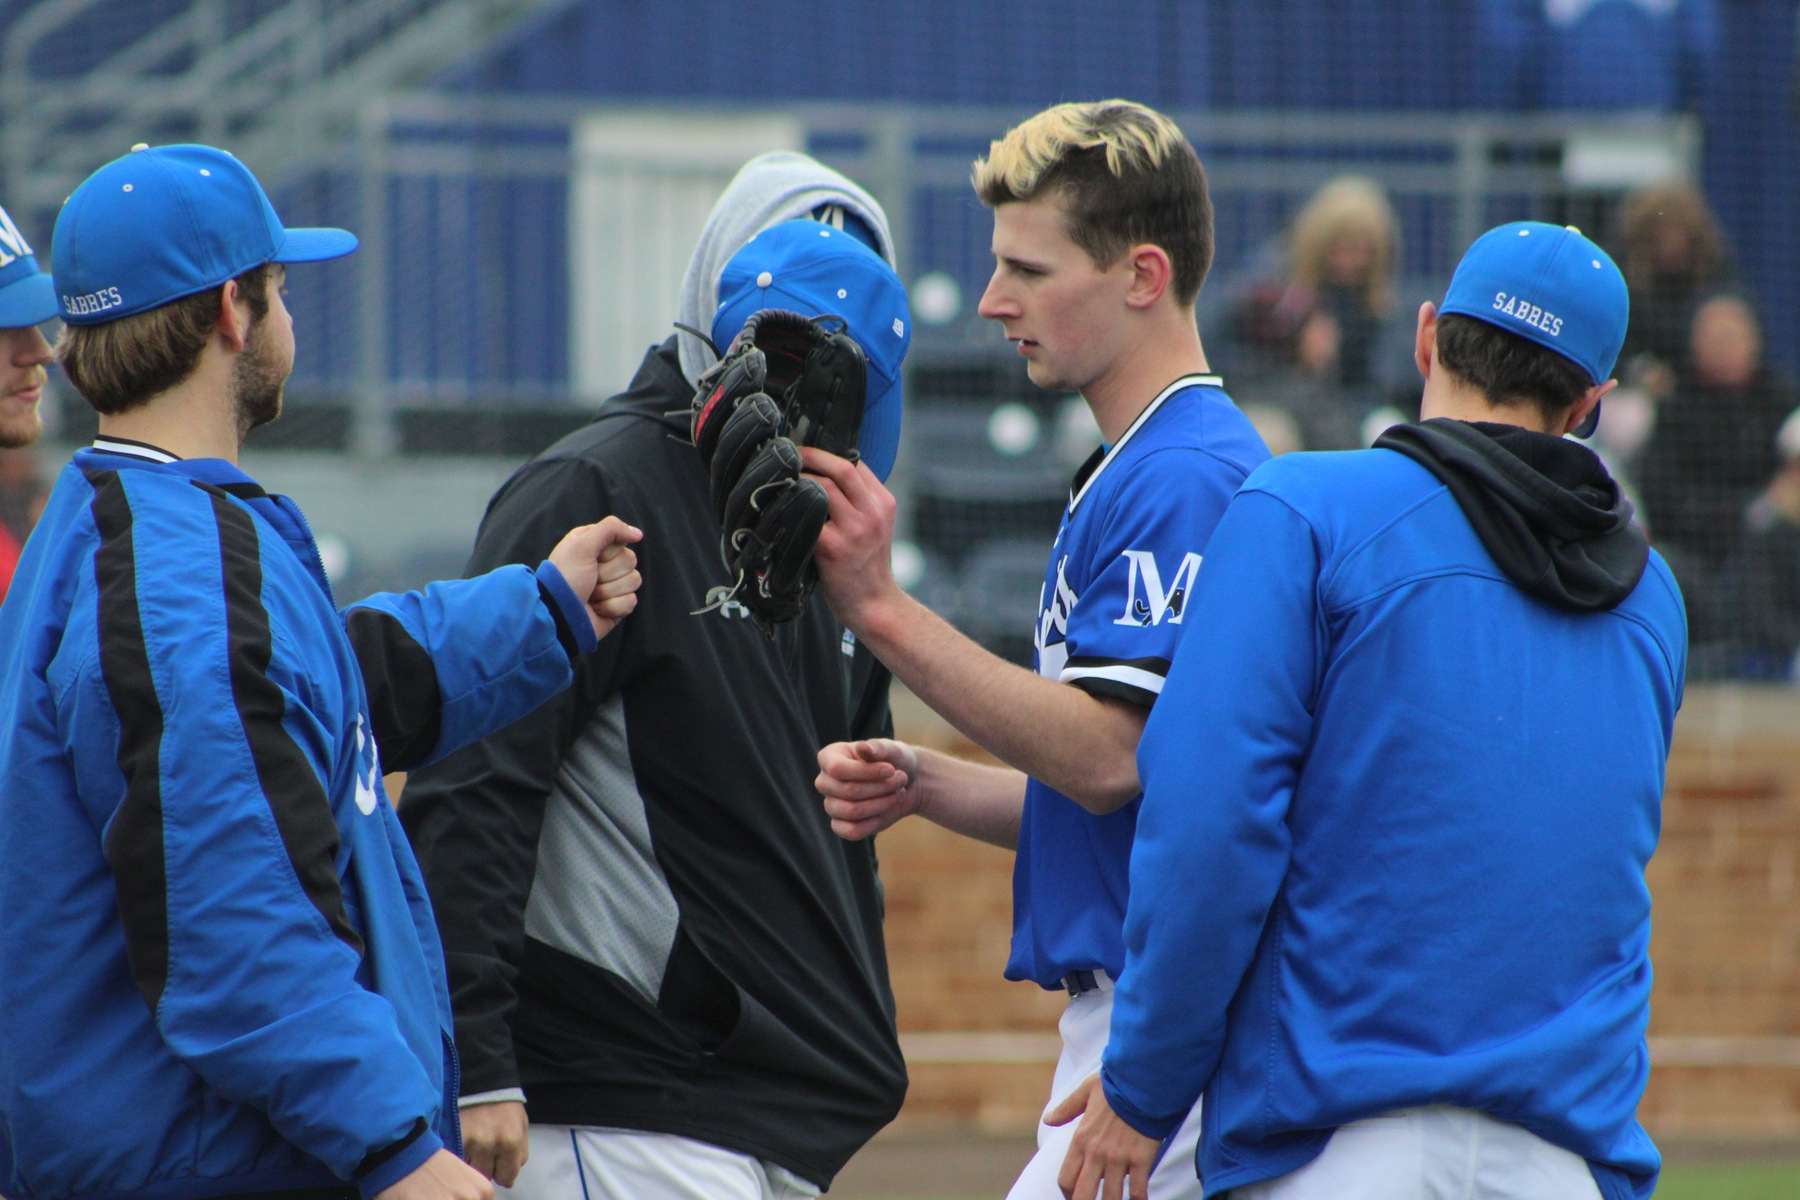 Ty Peccioli is greeted by teammates as he heads to the dugout.